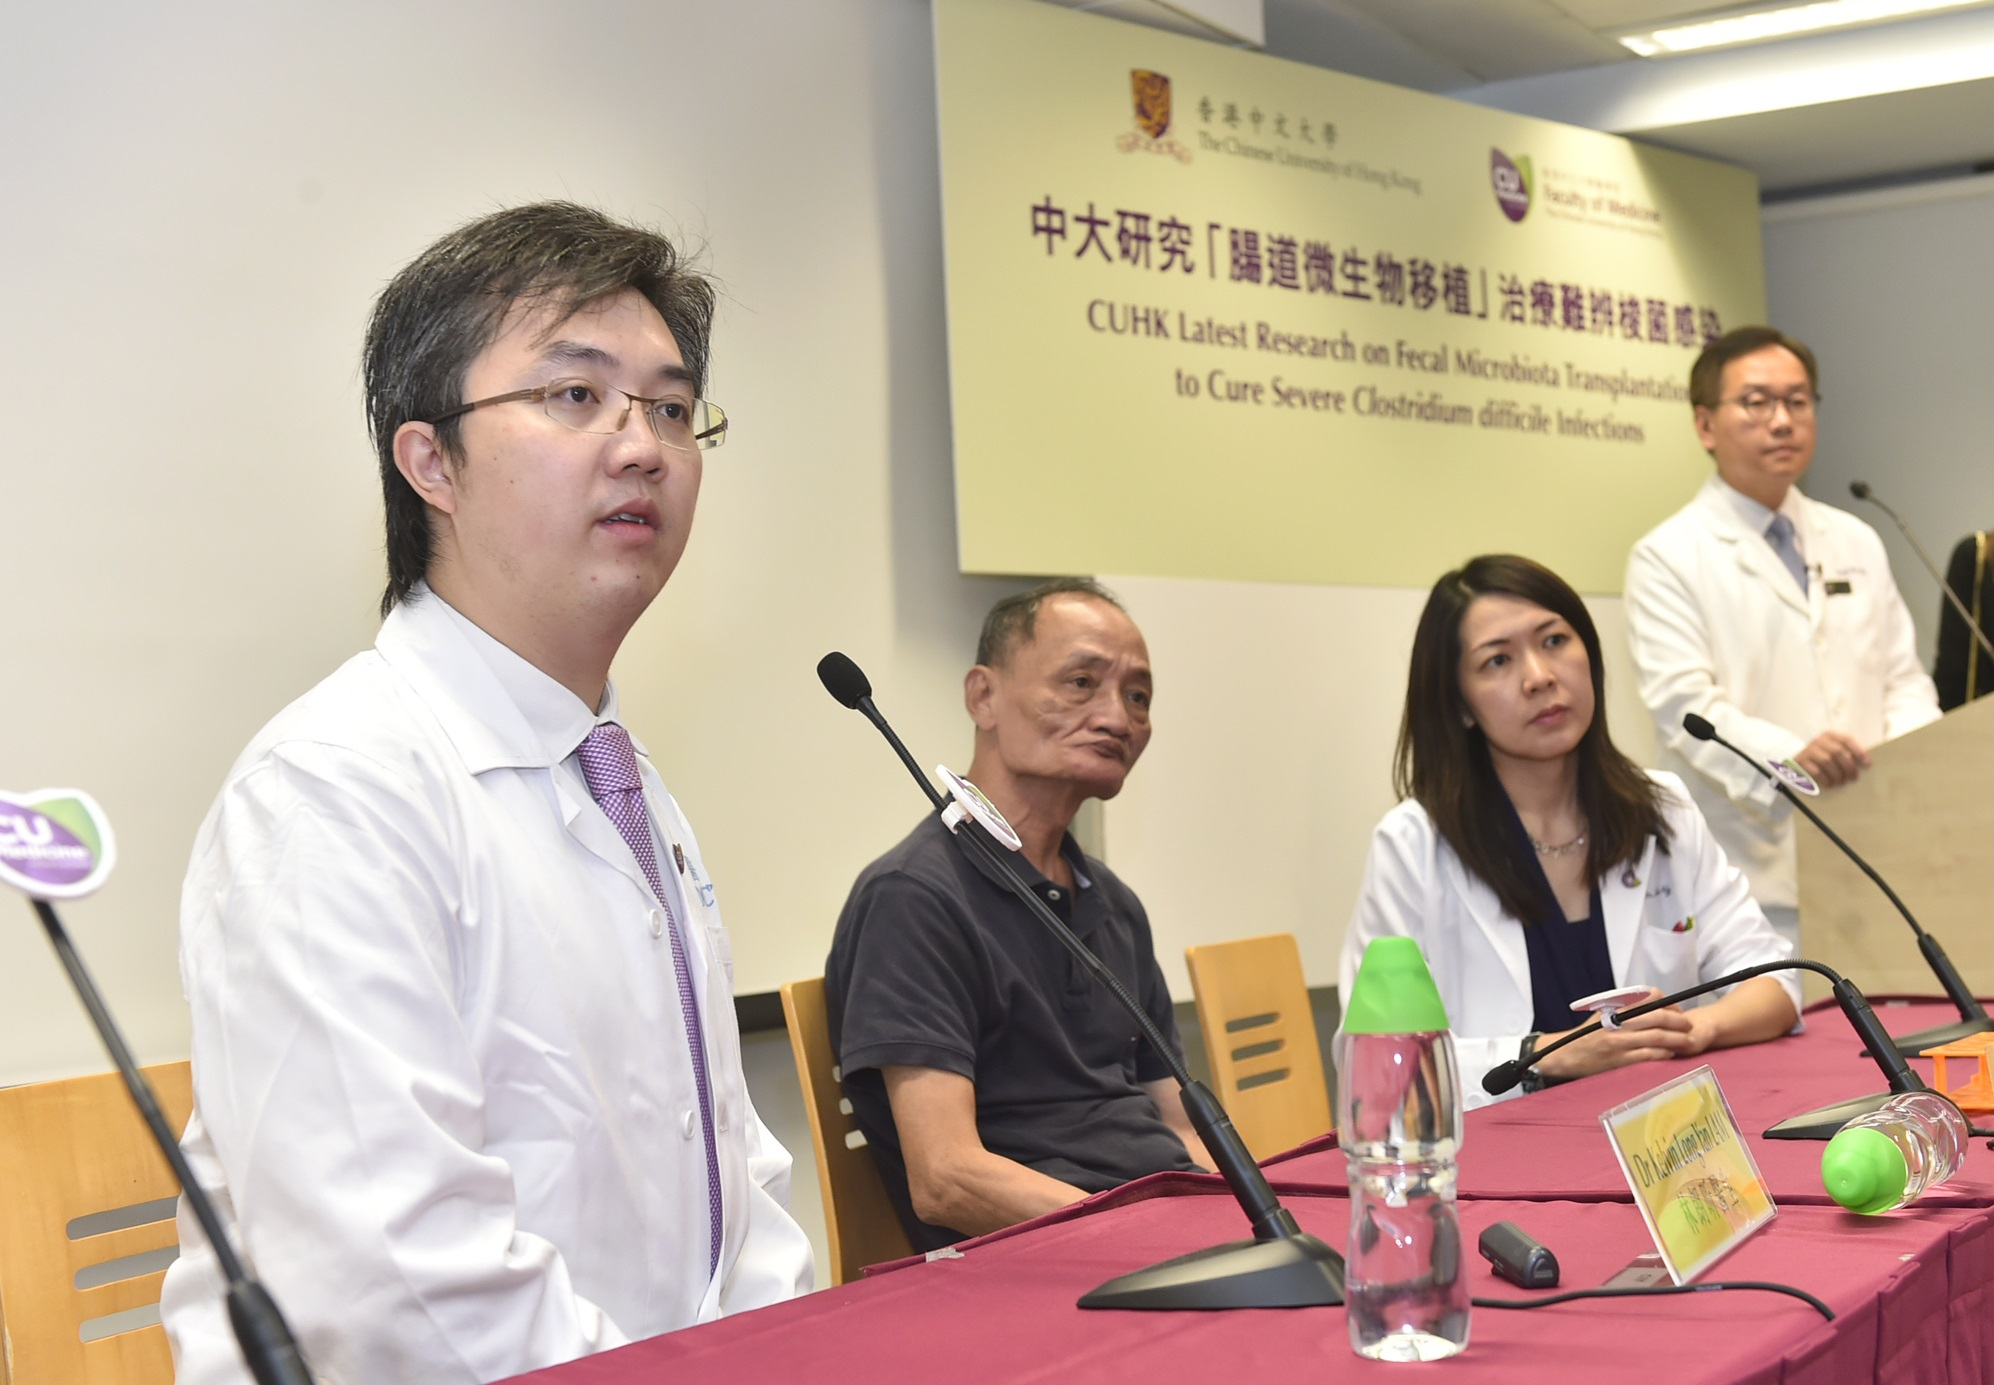 Mr Cheng (2nd left) kept suffering from diarrhea after 3 courses of antibiotic treatment. After FMT treatment, his symptoms have been relieved and there is no recurrence till now.